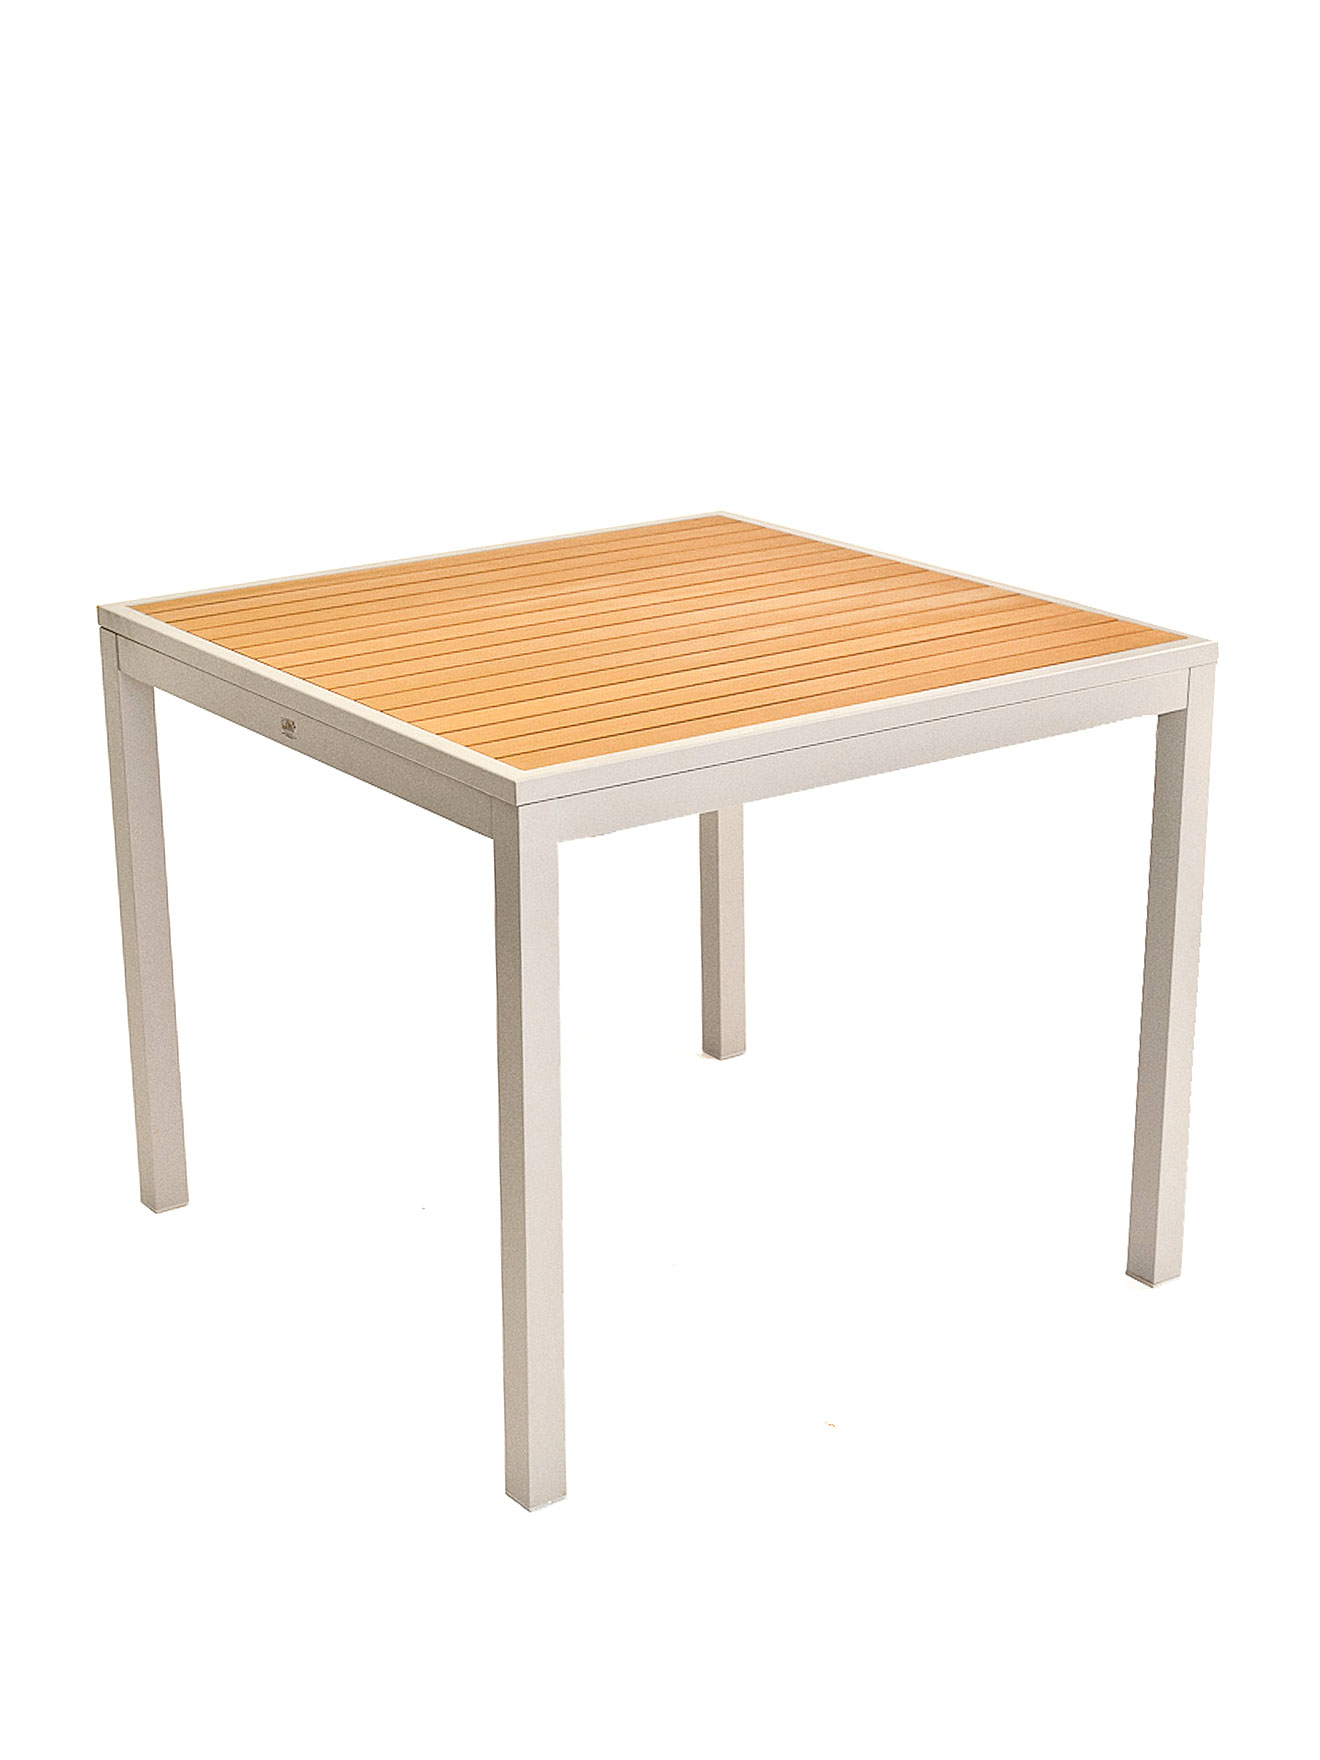 Faux Wood Aluminum Outdoor Furniture Palestencom - Teak and aluminium outdoor table